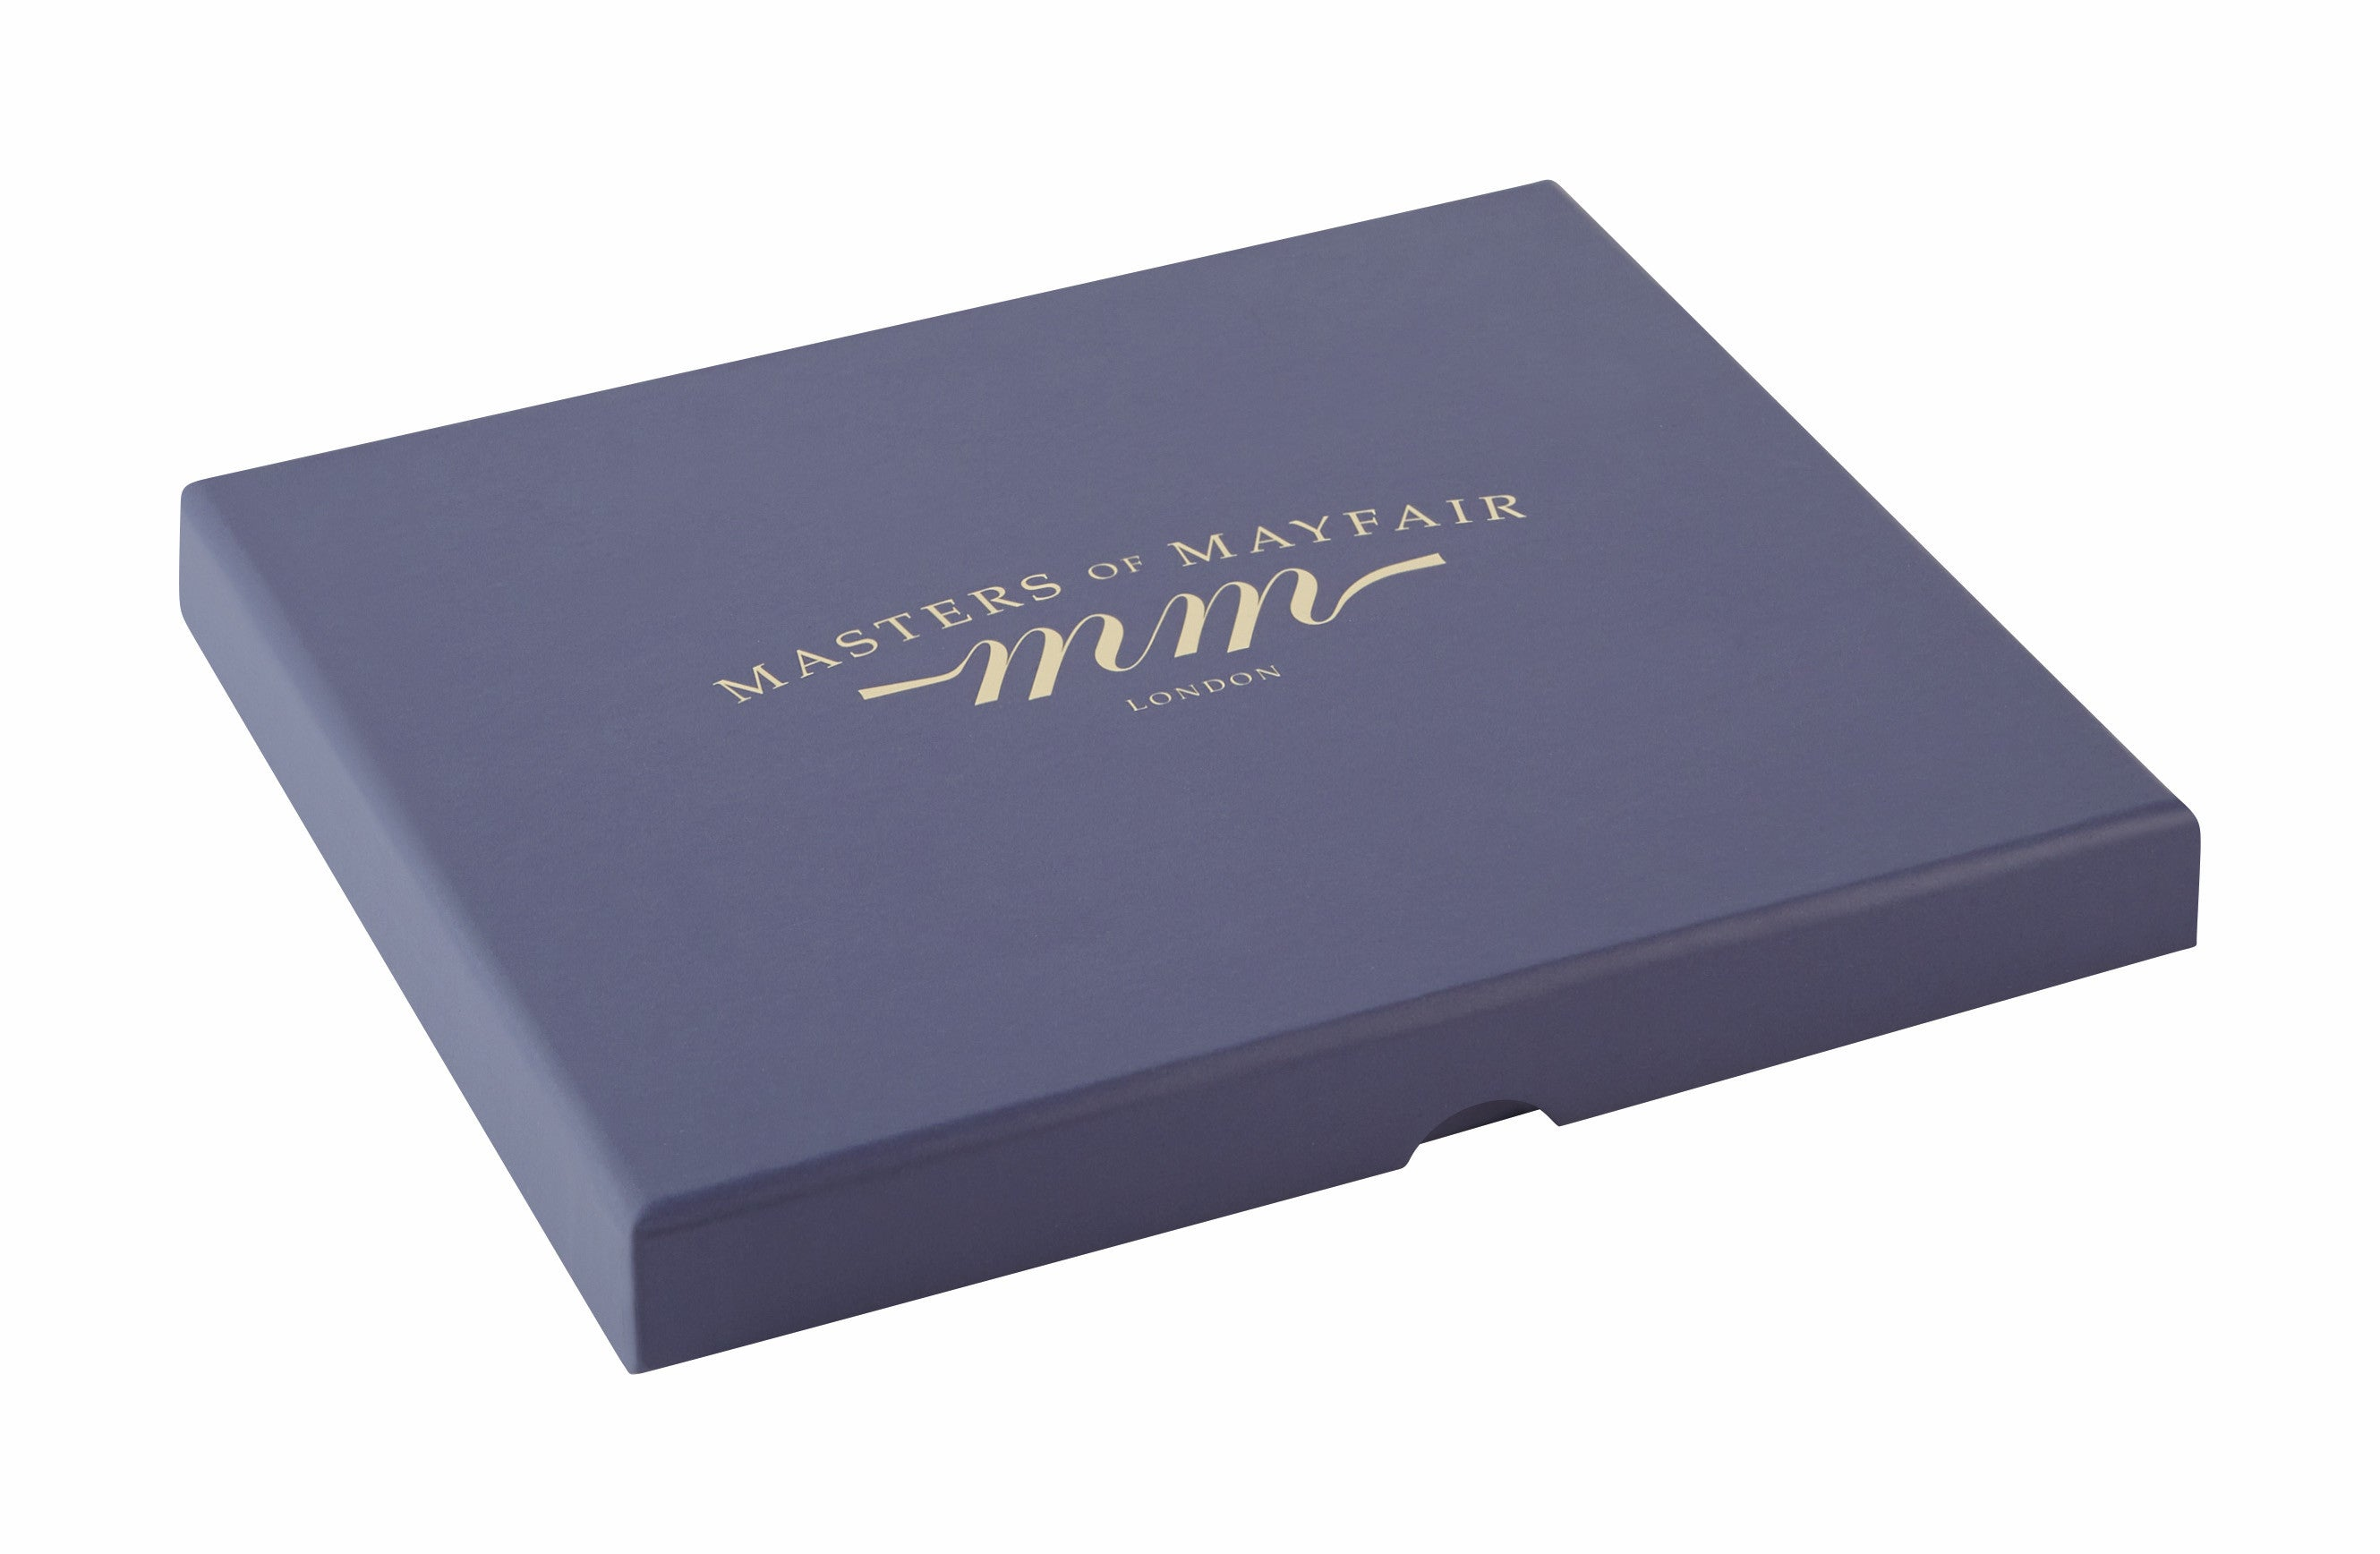 Masters of Mayfair UK Gift Box set